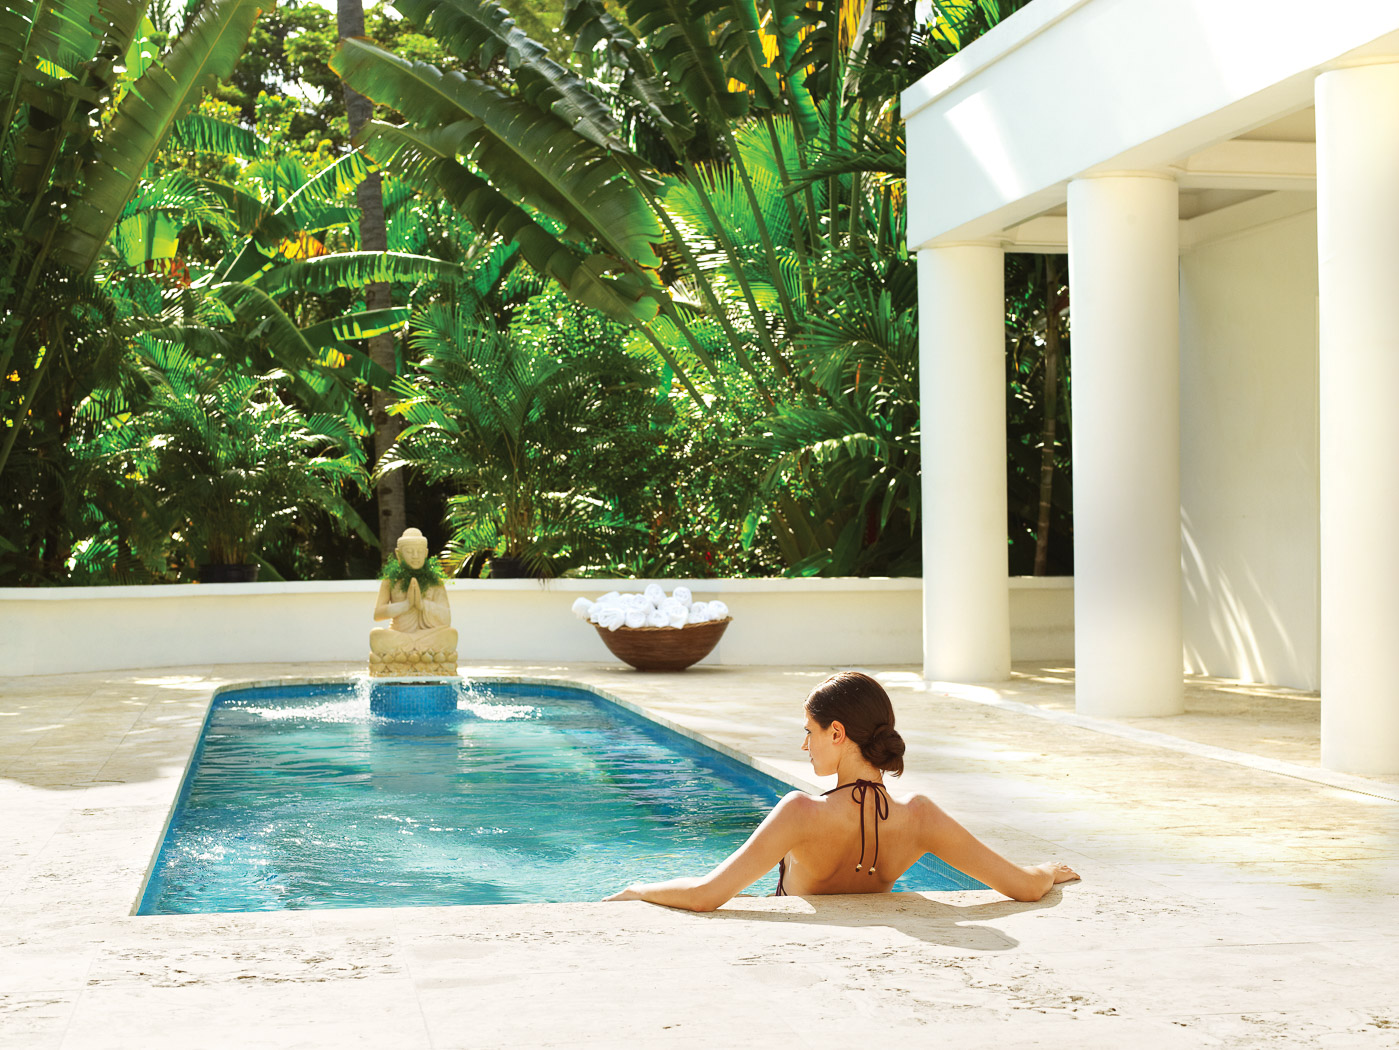 The Oasis Spa at Couples Tower Isle